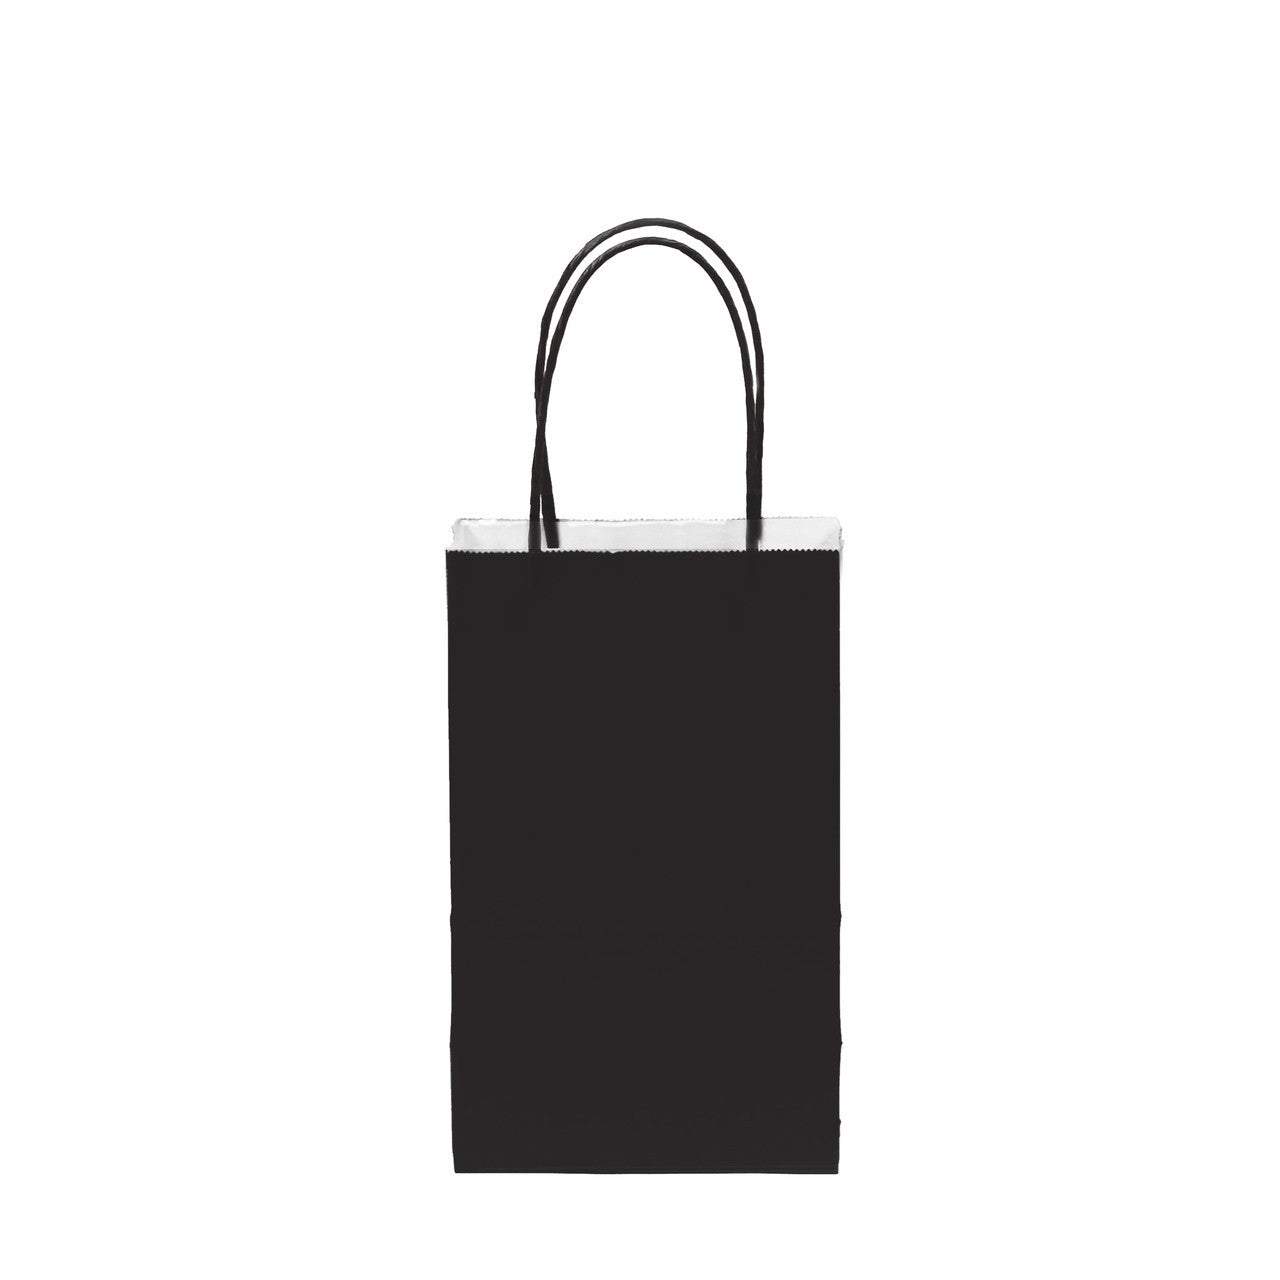 "12 pcs- Solid Black Color Kraft Bag 5"" x 8.25"""